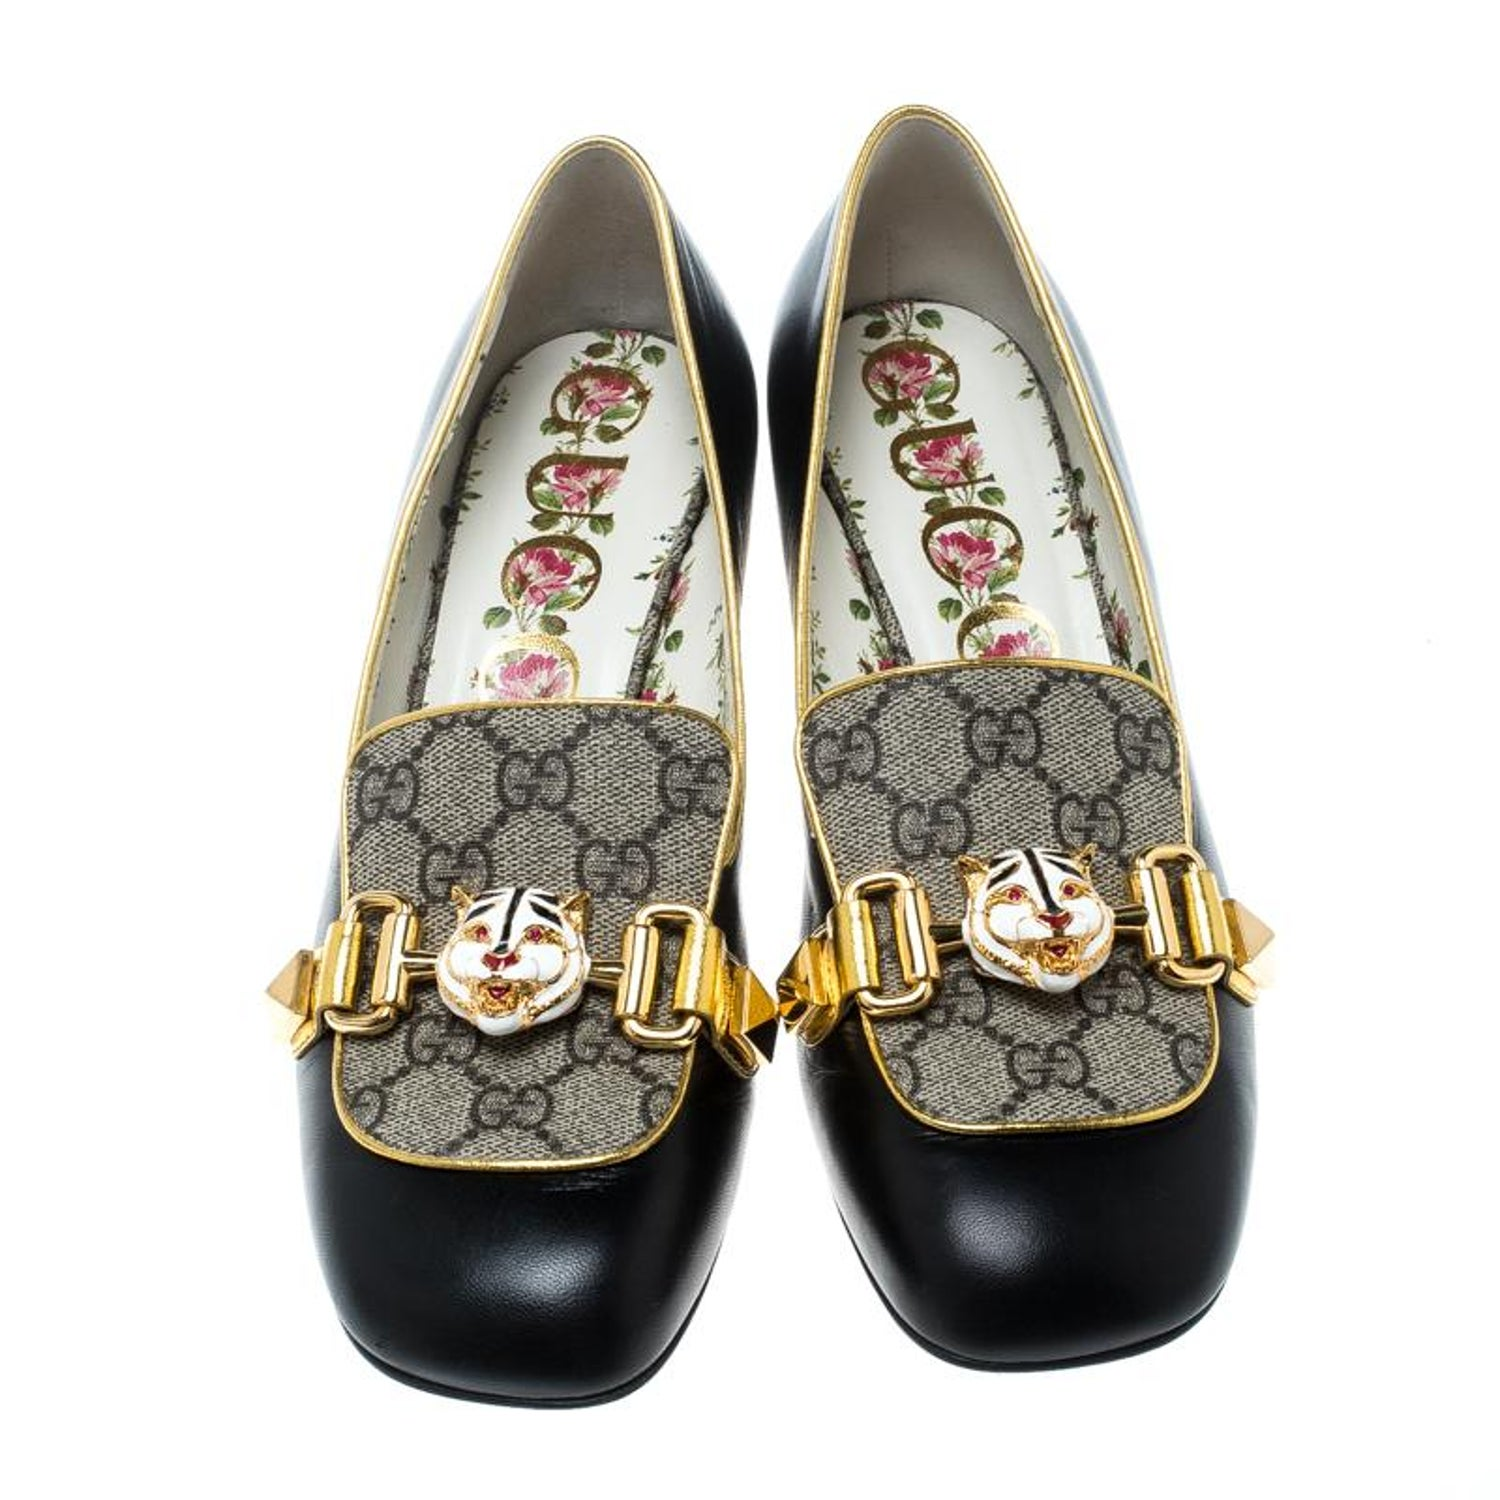 d6e63b817 Gucci Beige/Black GG Canvas And Leather Cheryl Loafer Pumps Size 38.5 For  Sale at 1stdibs